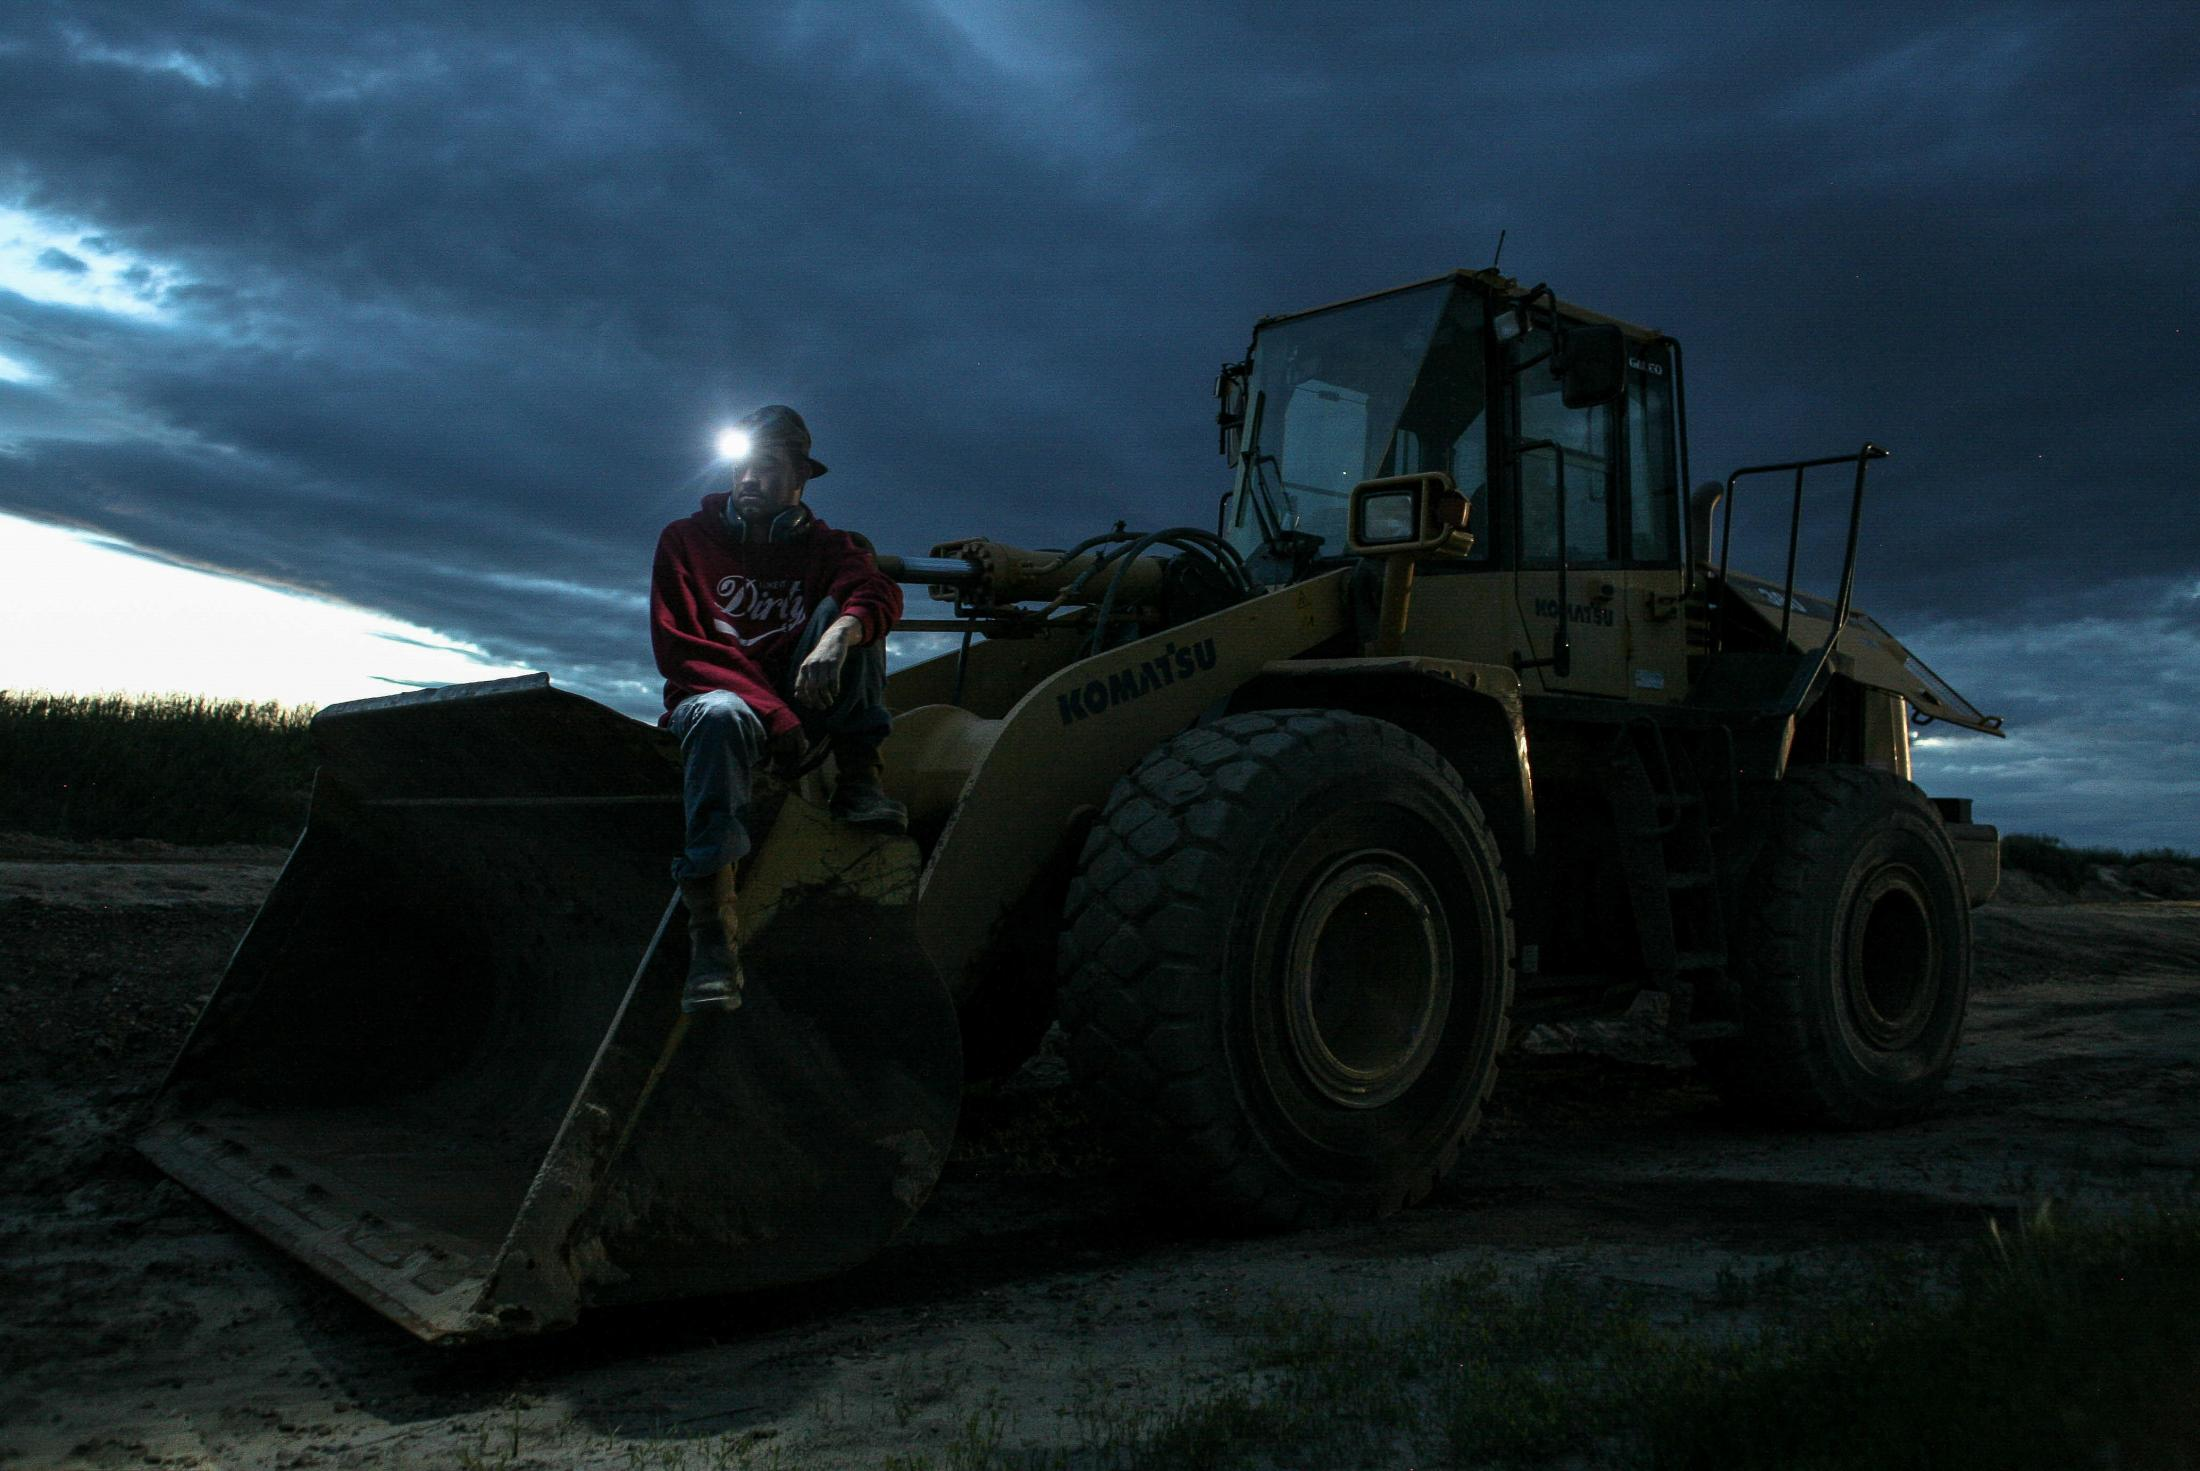 6/20/14- North Dakota - Dylan, an operator at a frac sand storage facility, sits on a front-end loader's bucket. Dylan moved from Louisiana to North Dakota to find opportunities for himself, as many young men have.